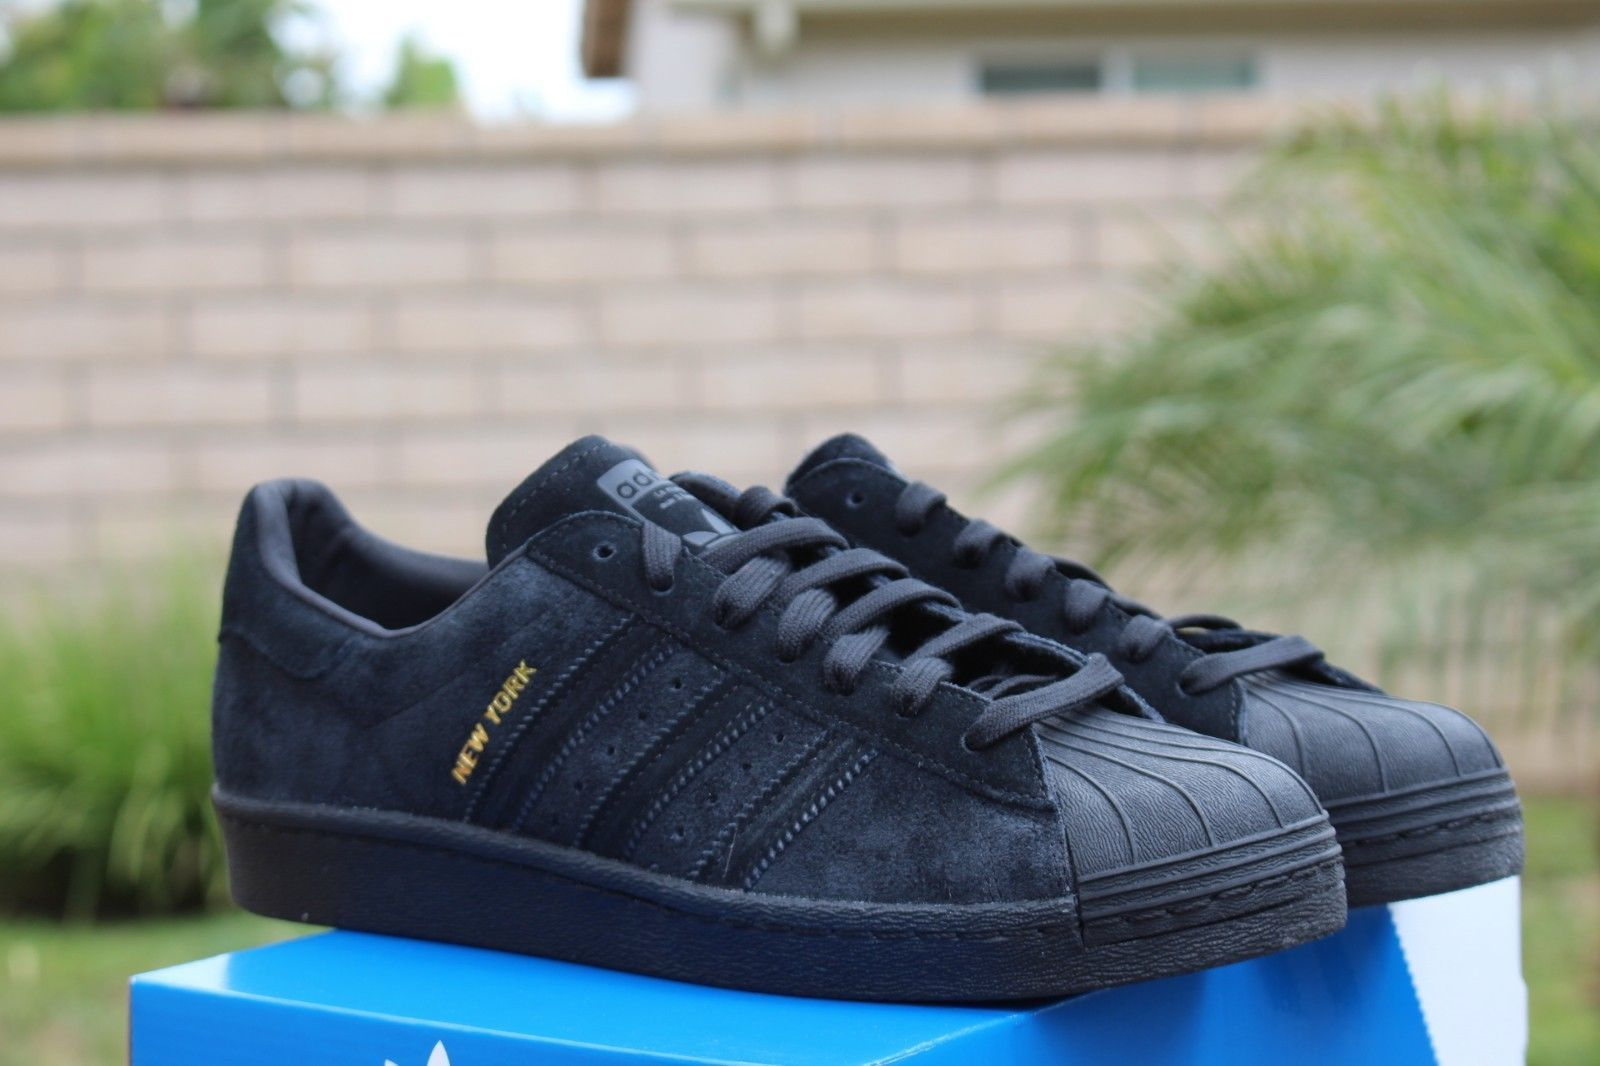 RARE Mens Cheap Adidas Adicolor Superstar W5 10.5 SNEAKERS